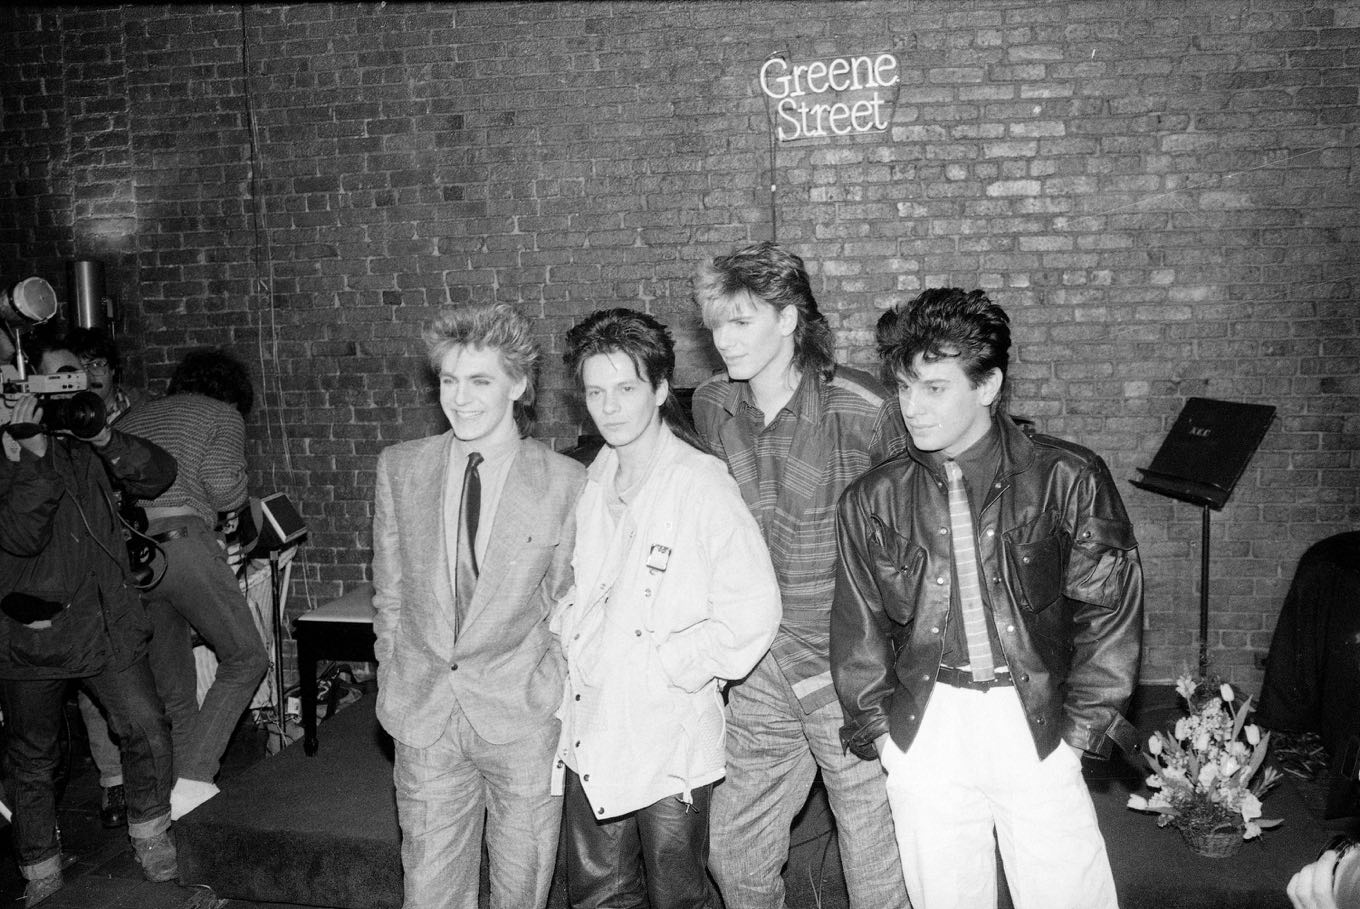 Duran Duran in 1984. New York, New York. (Photo by David Handschuh / Associated Press)